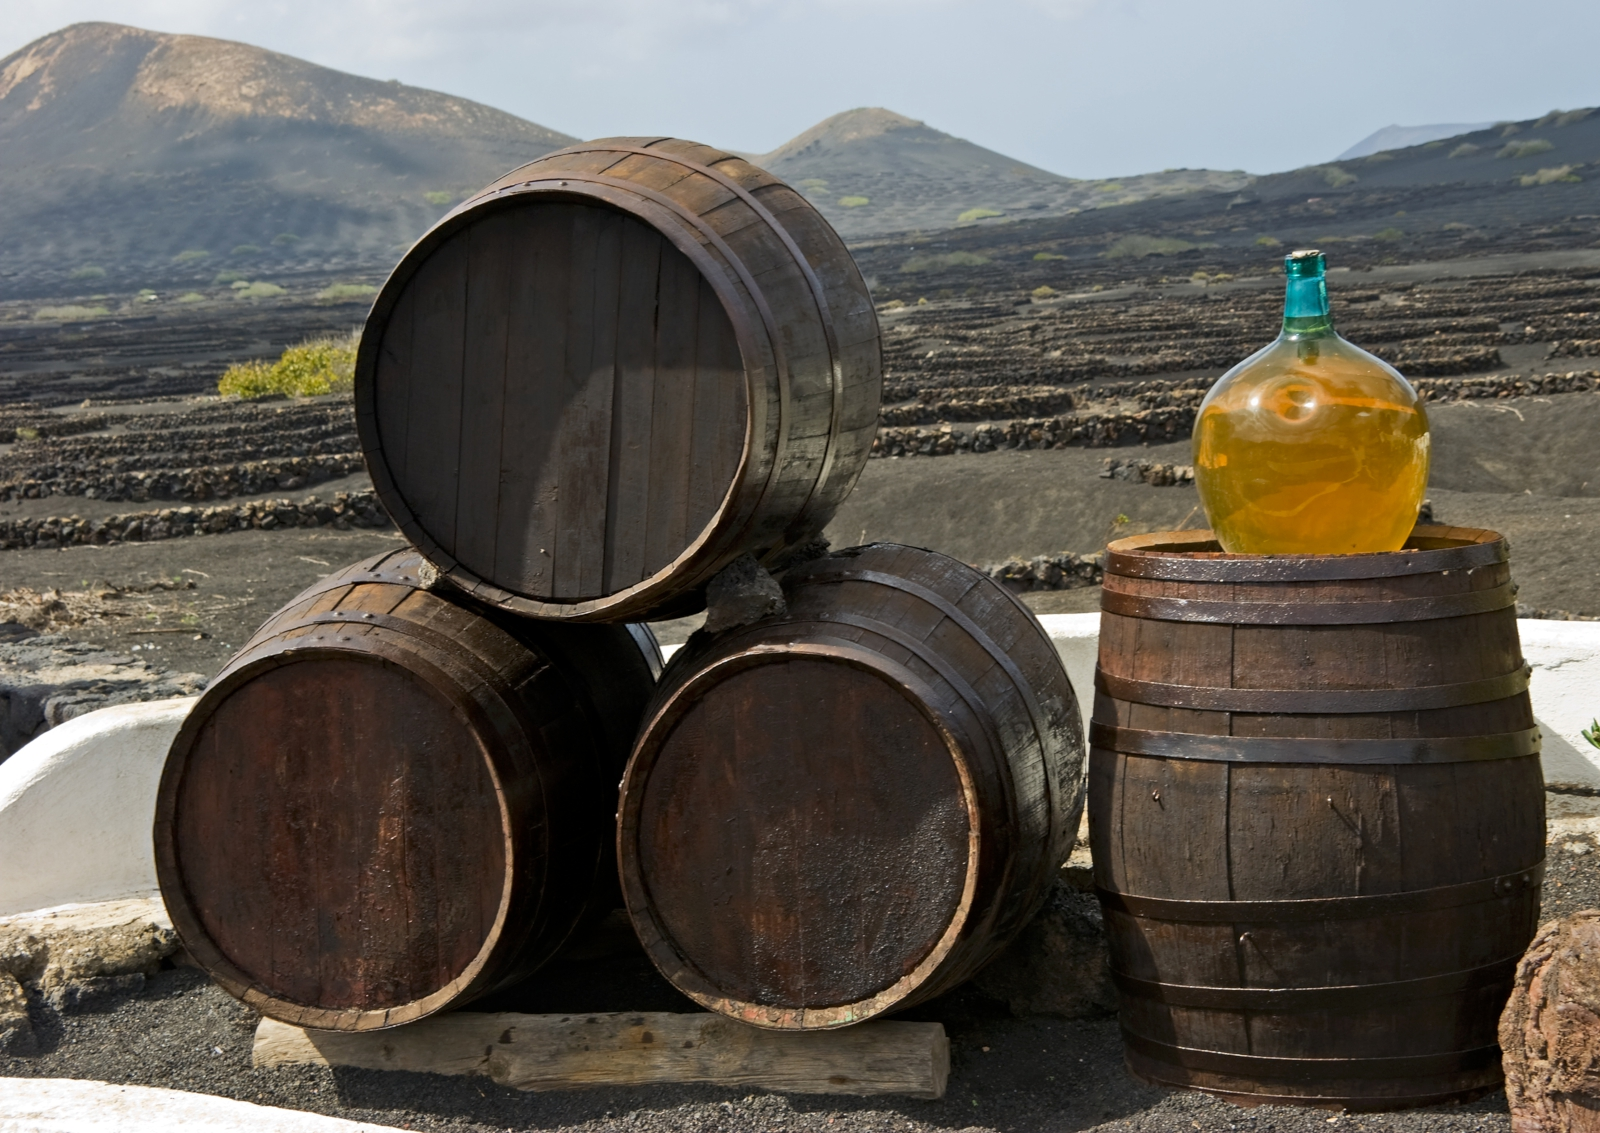 'Wine barrels on background vines and mountains , Lanzarote; Canary islands.' - Lanzarote